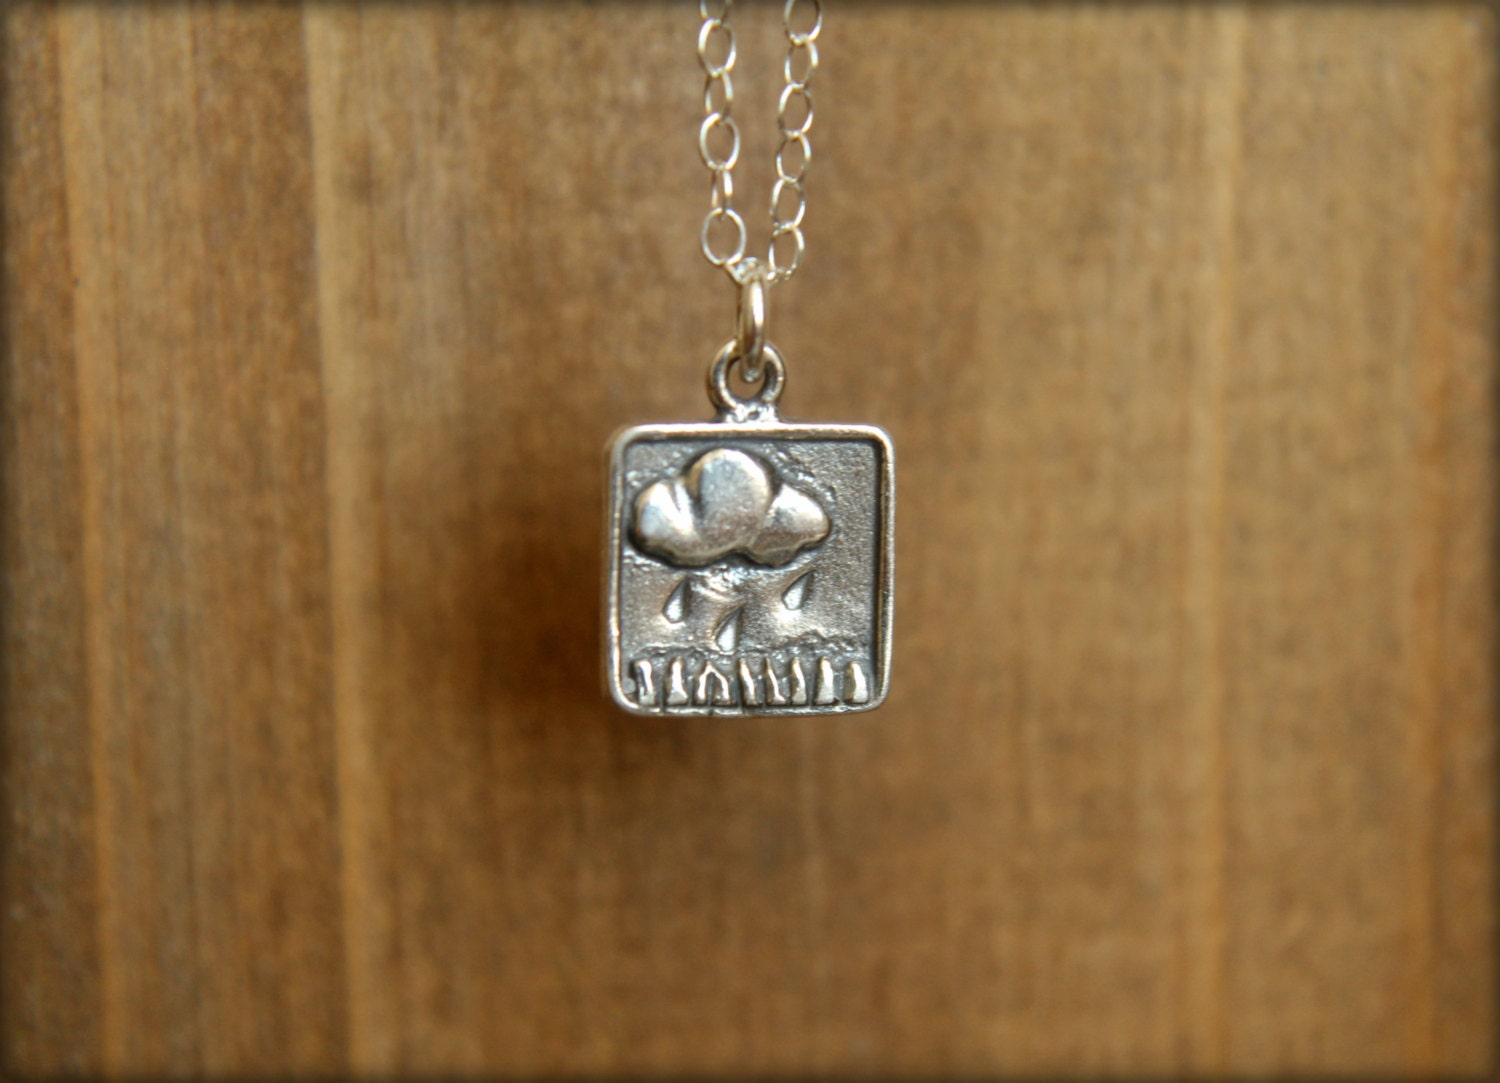 Rain Cloud Necklace in Sterling Silver - saffronandsaege